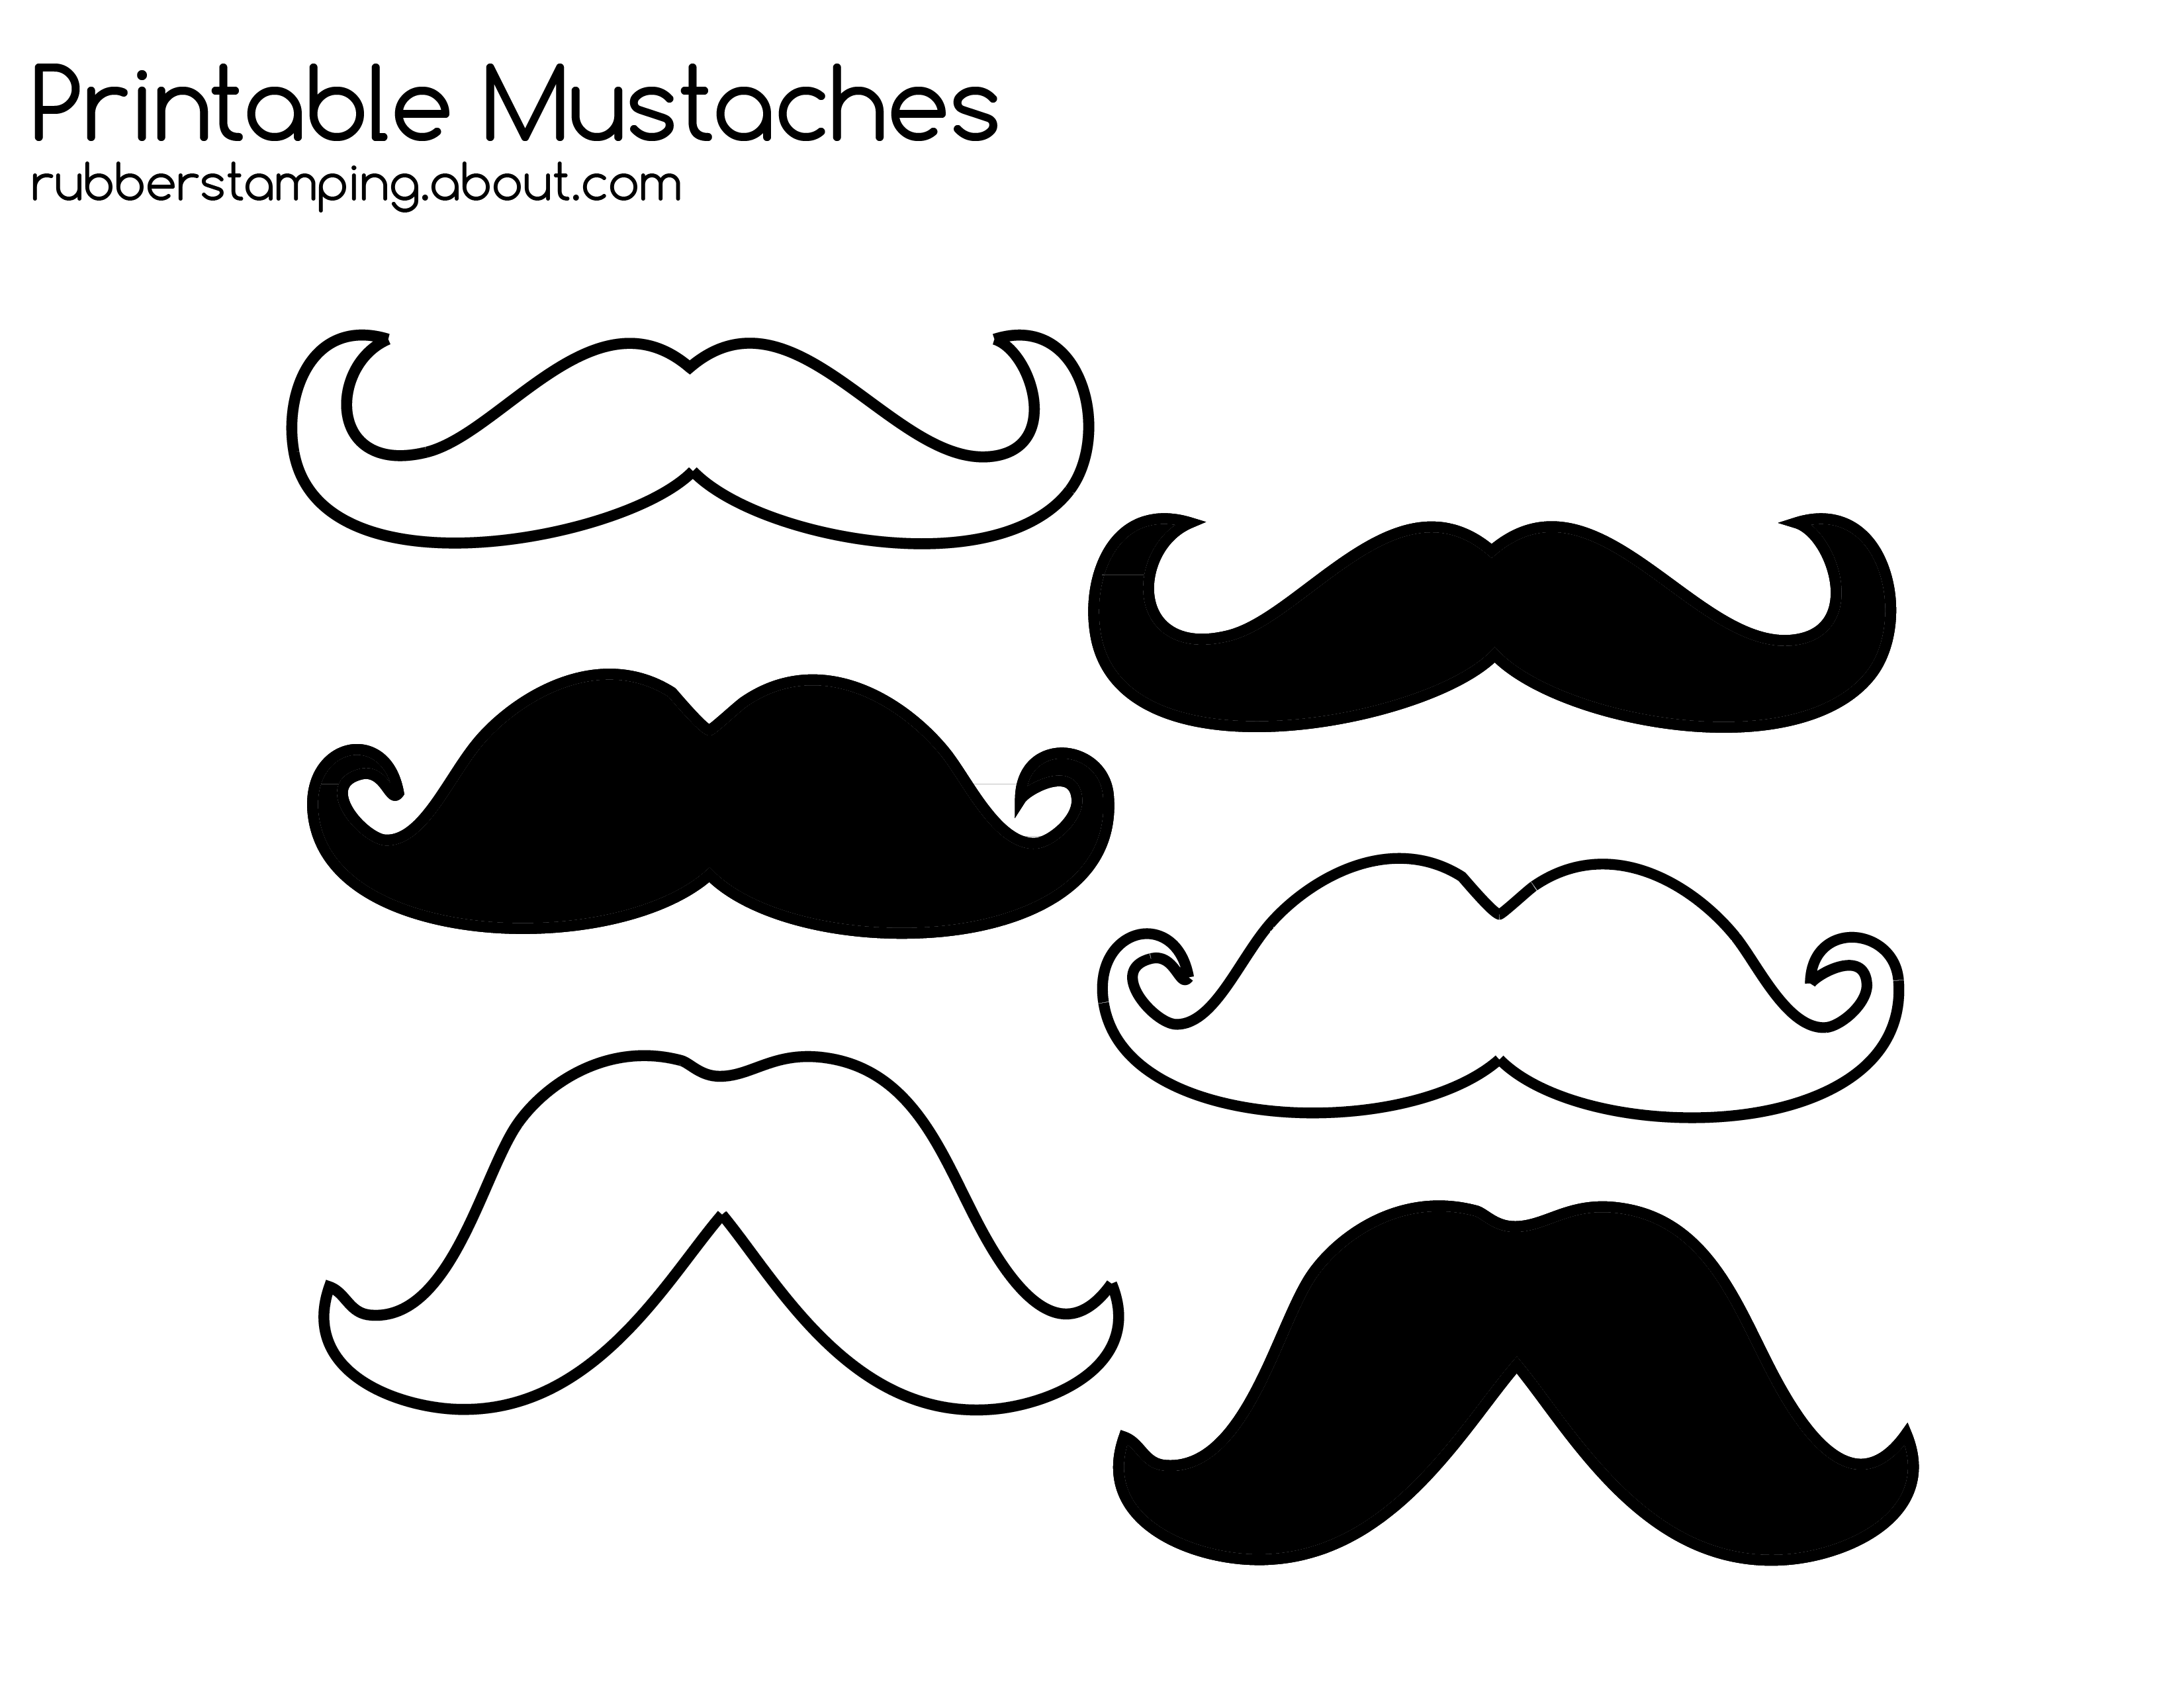 Drawing at getdrawings com. Mustache clipart handlebar mustache